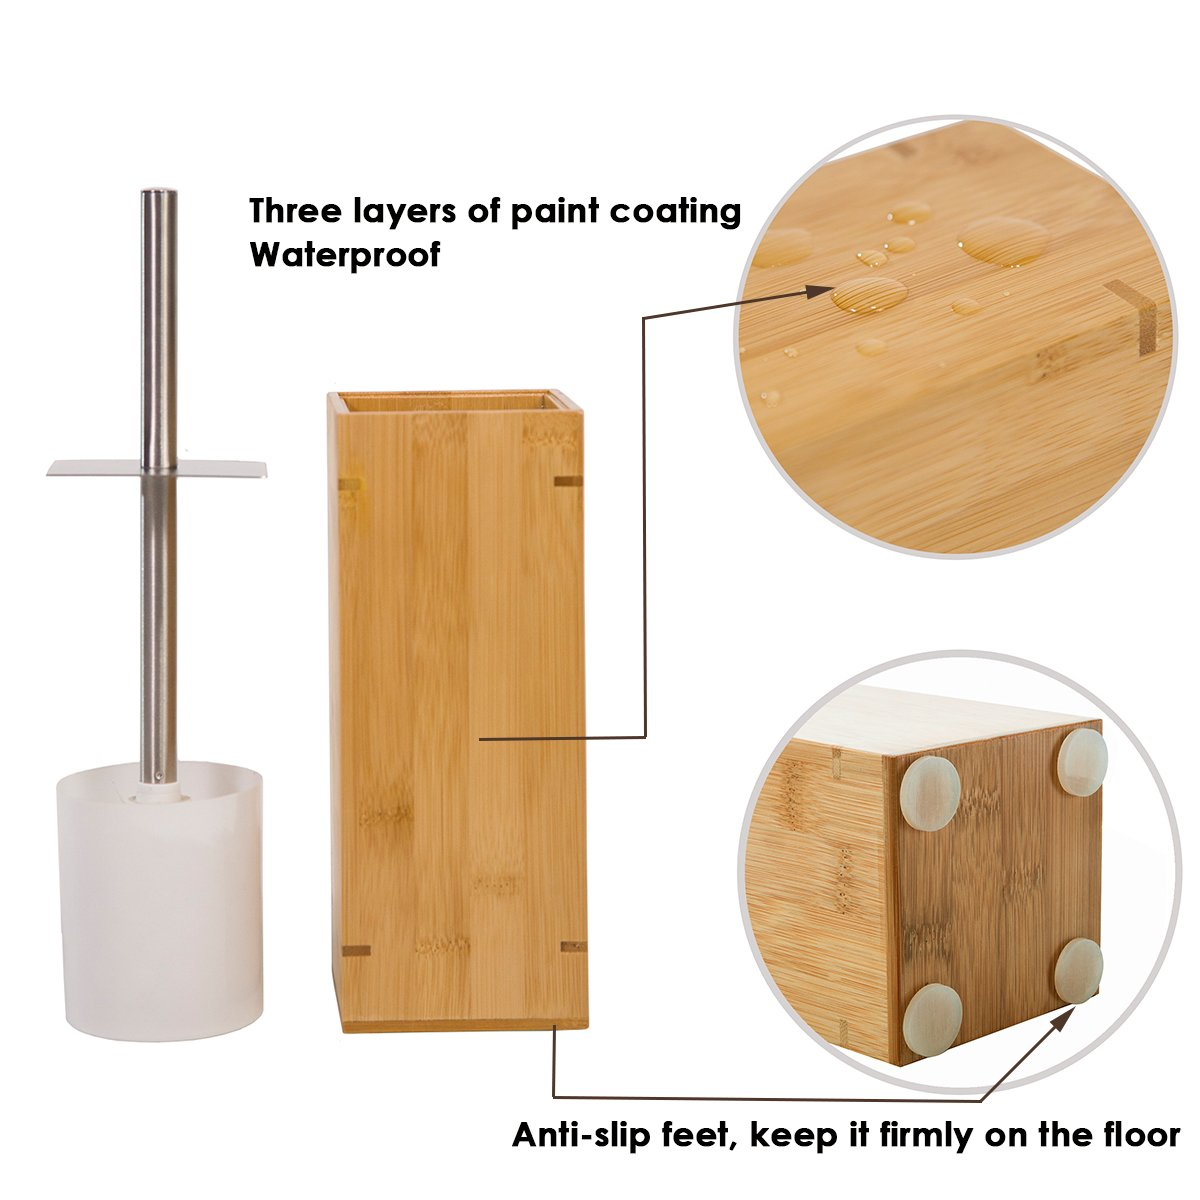 White Fits All Bathroom Toilet Types Bamboo Long Stainless Steel Handle with Lid and Strong Bristles GOBAM Toilet Brush and Holder